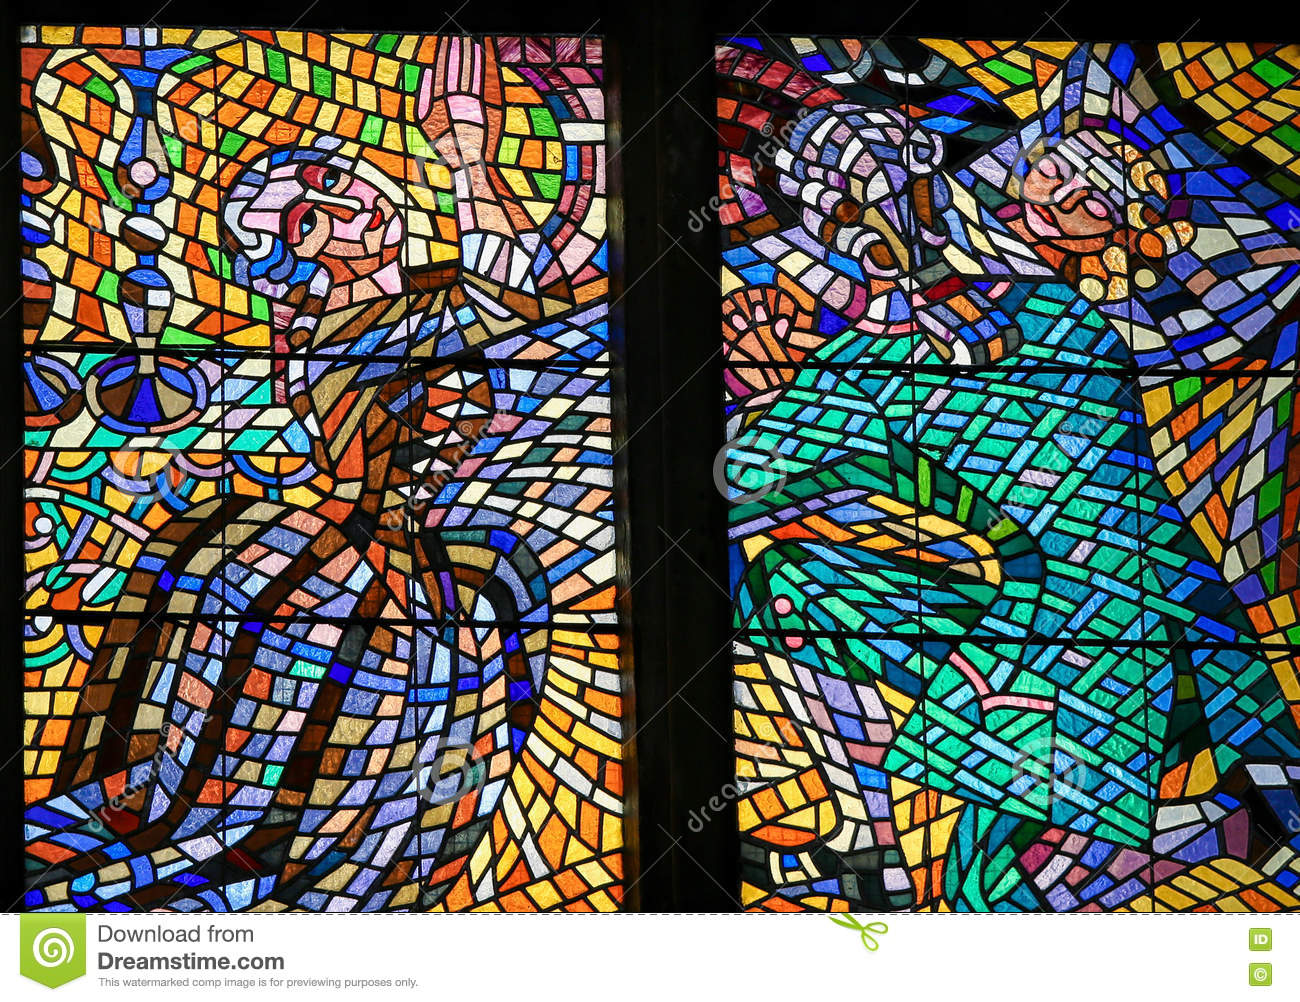 Stained Glass - Couple praying for their daughter